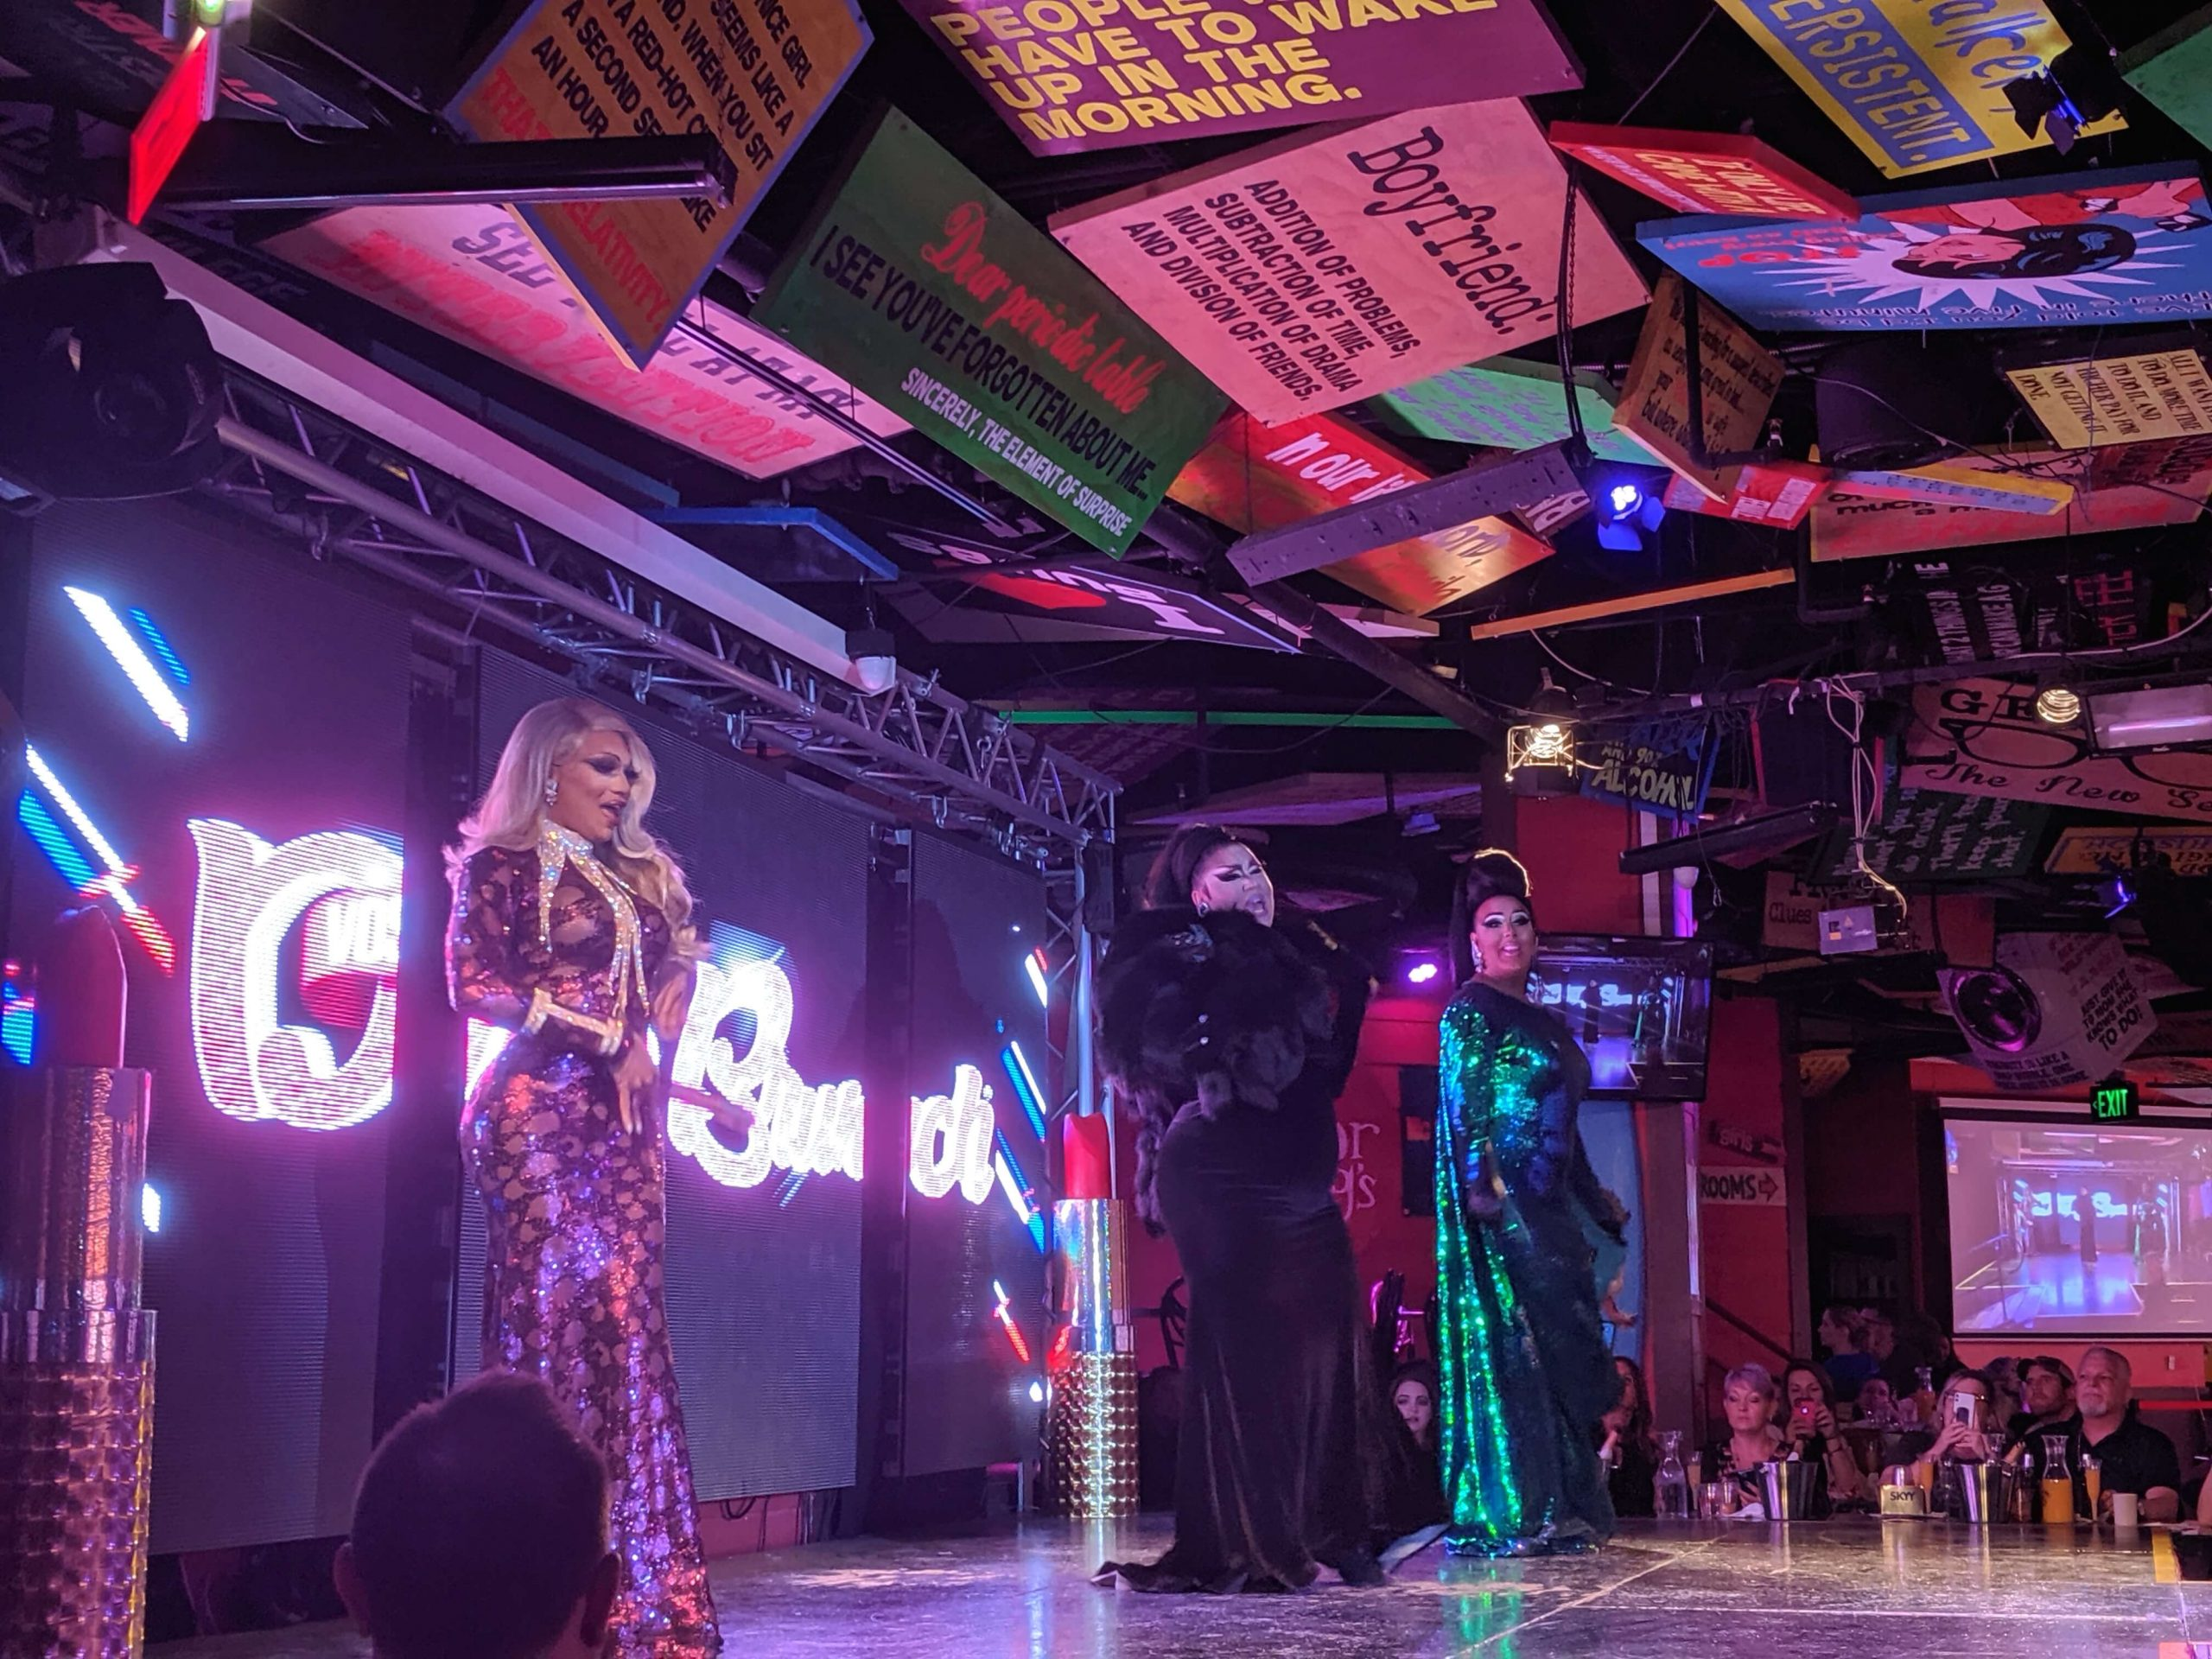 The former contestants of RuPaul's Drag Race reality show taking the stage for our Drag Queen Brunch